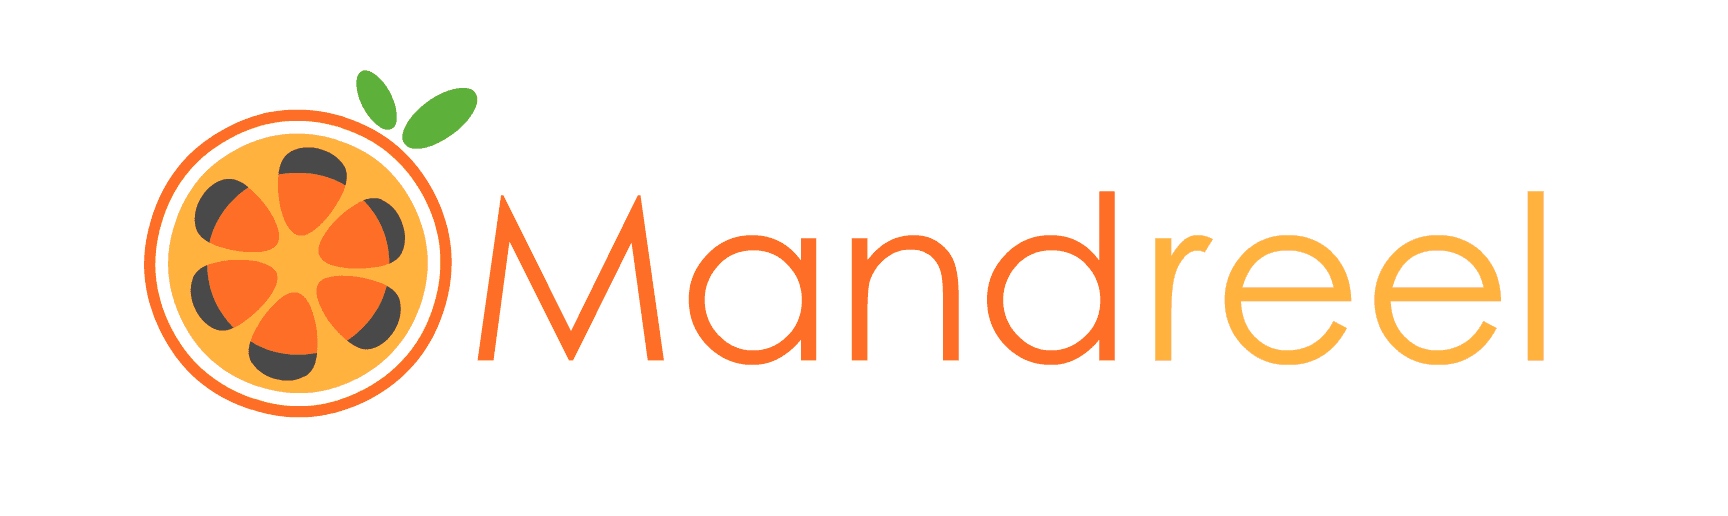 Branding, Creative & Graphic Design Agency Services from Mandreel